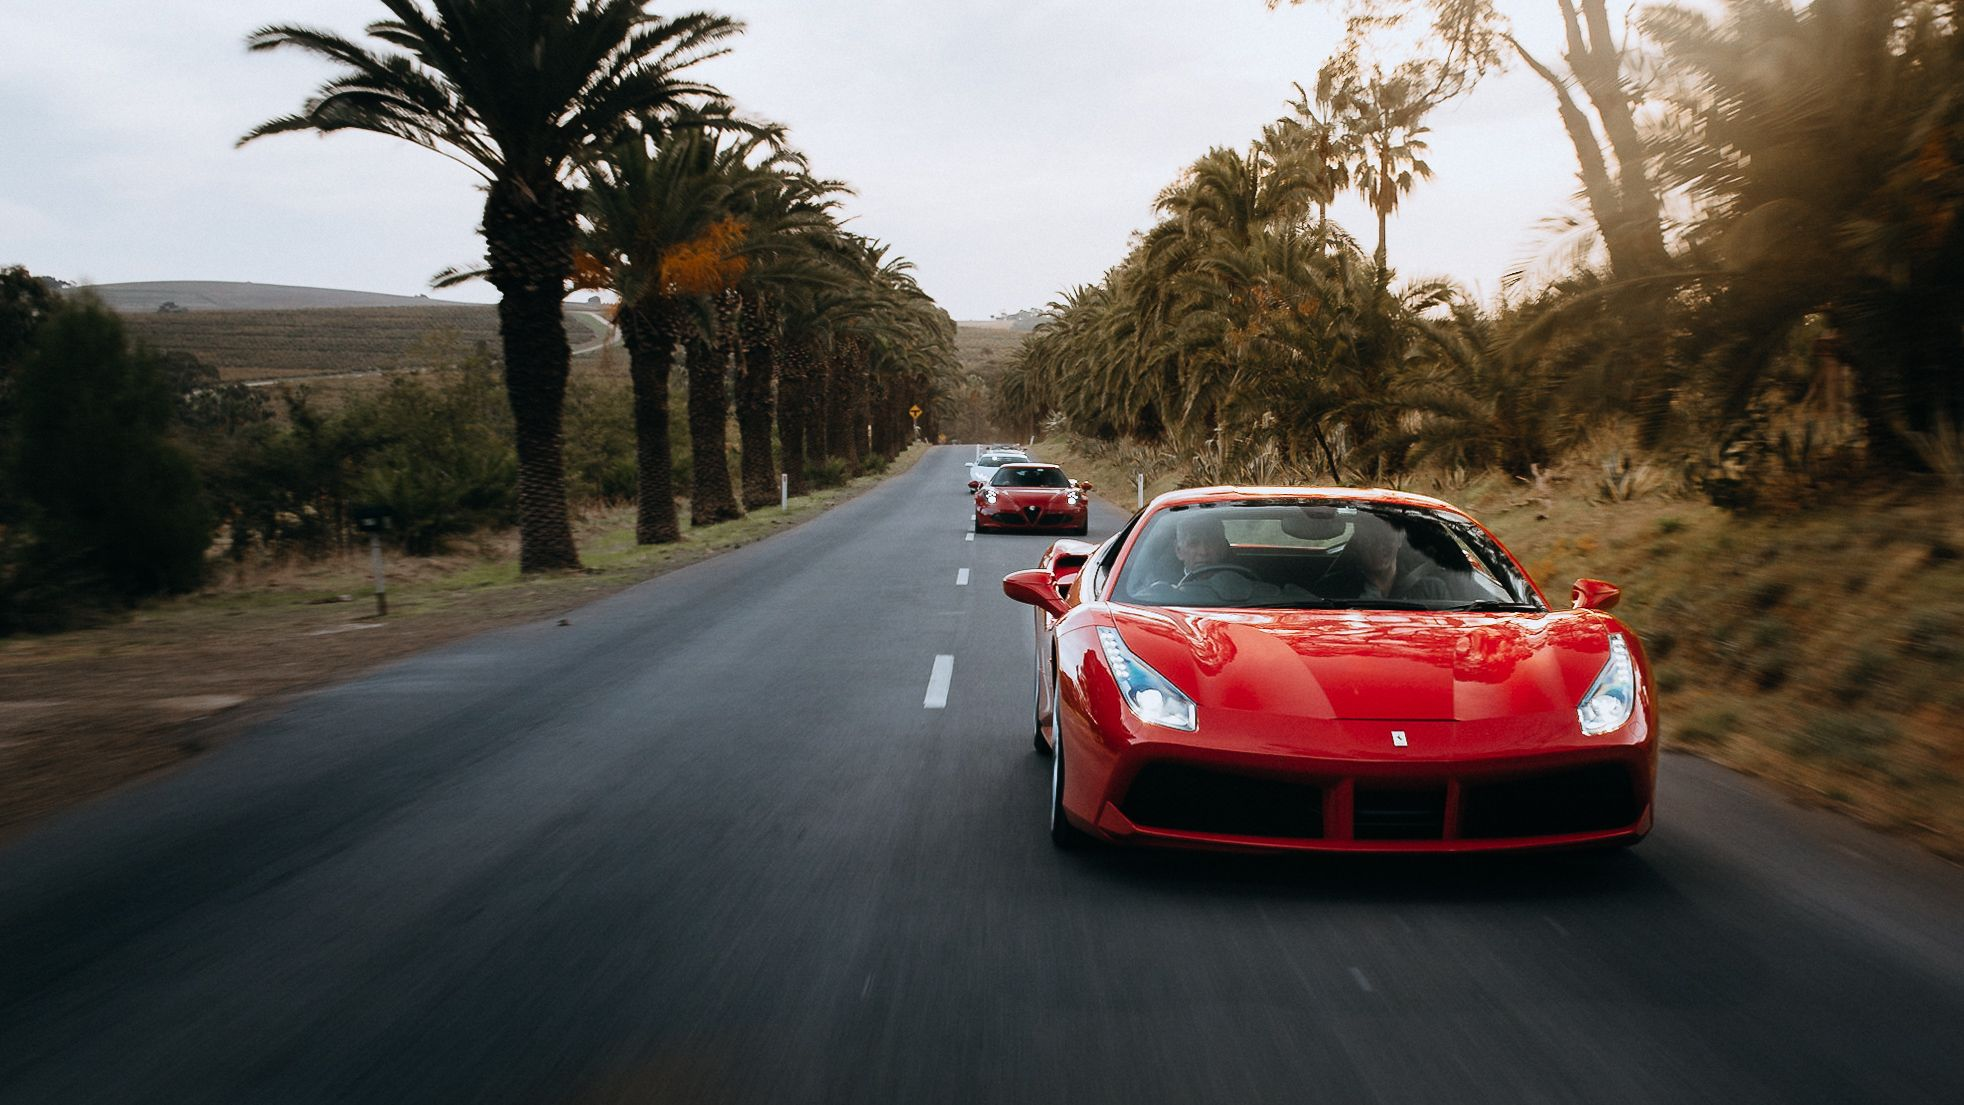 Supercars Driving Along This Beautiful Road Lined With Palm Trees In The Barossa Valley Supercar Driving Experience Super Cars Driving Experience